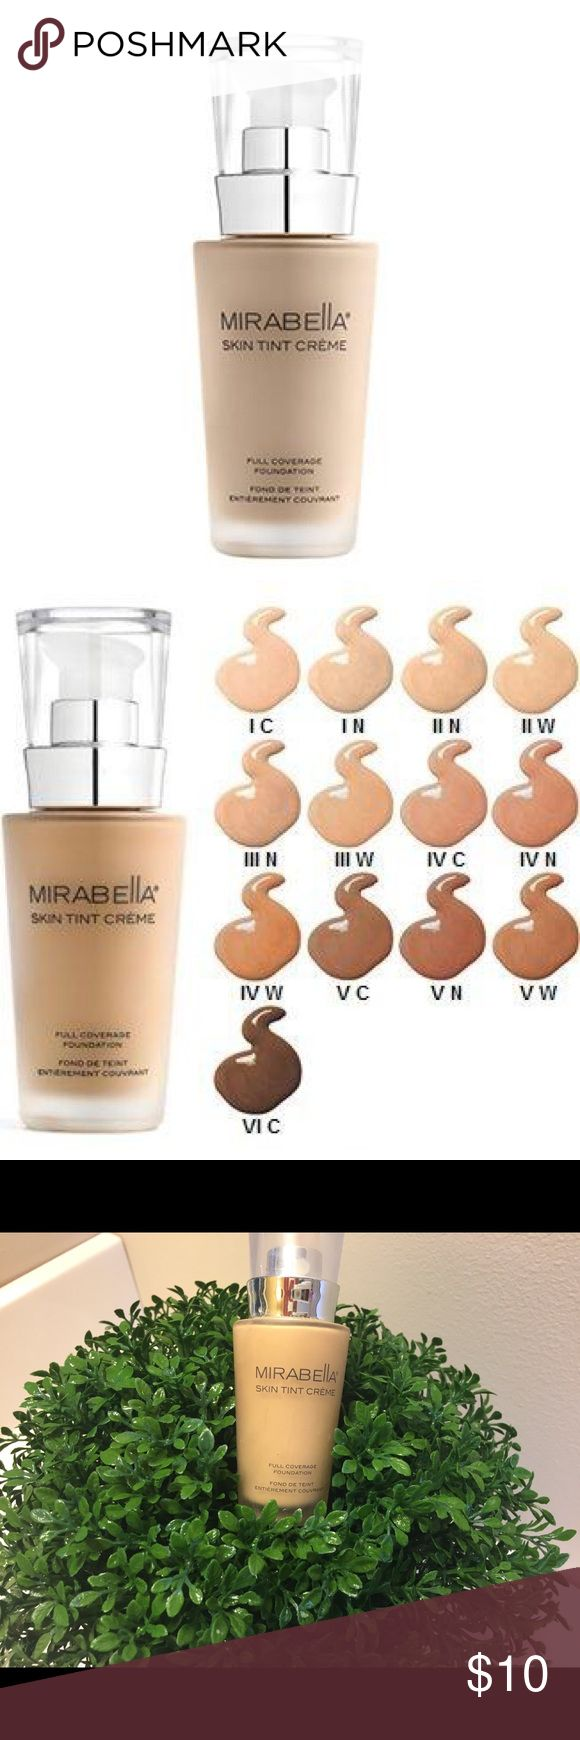 Mirabella Skin Tint Creme II N Mineral based foundation, medium coverage Over half full...only used handful of times Mirabella Makeup Foundation